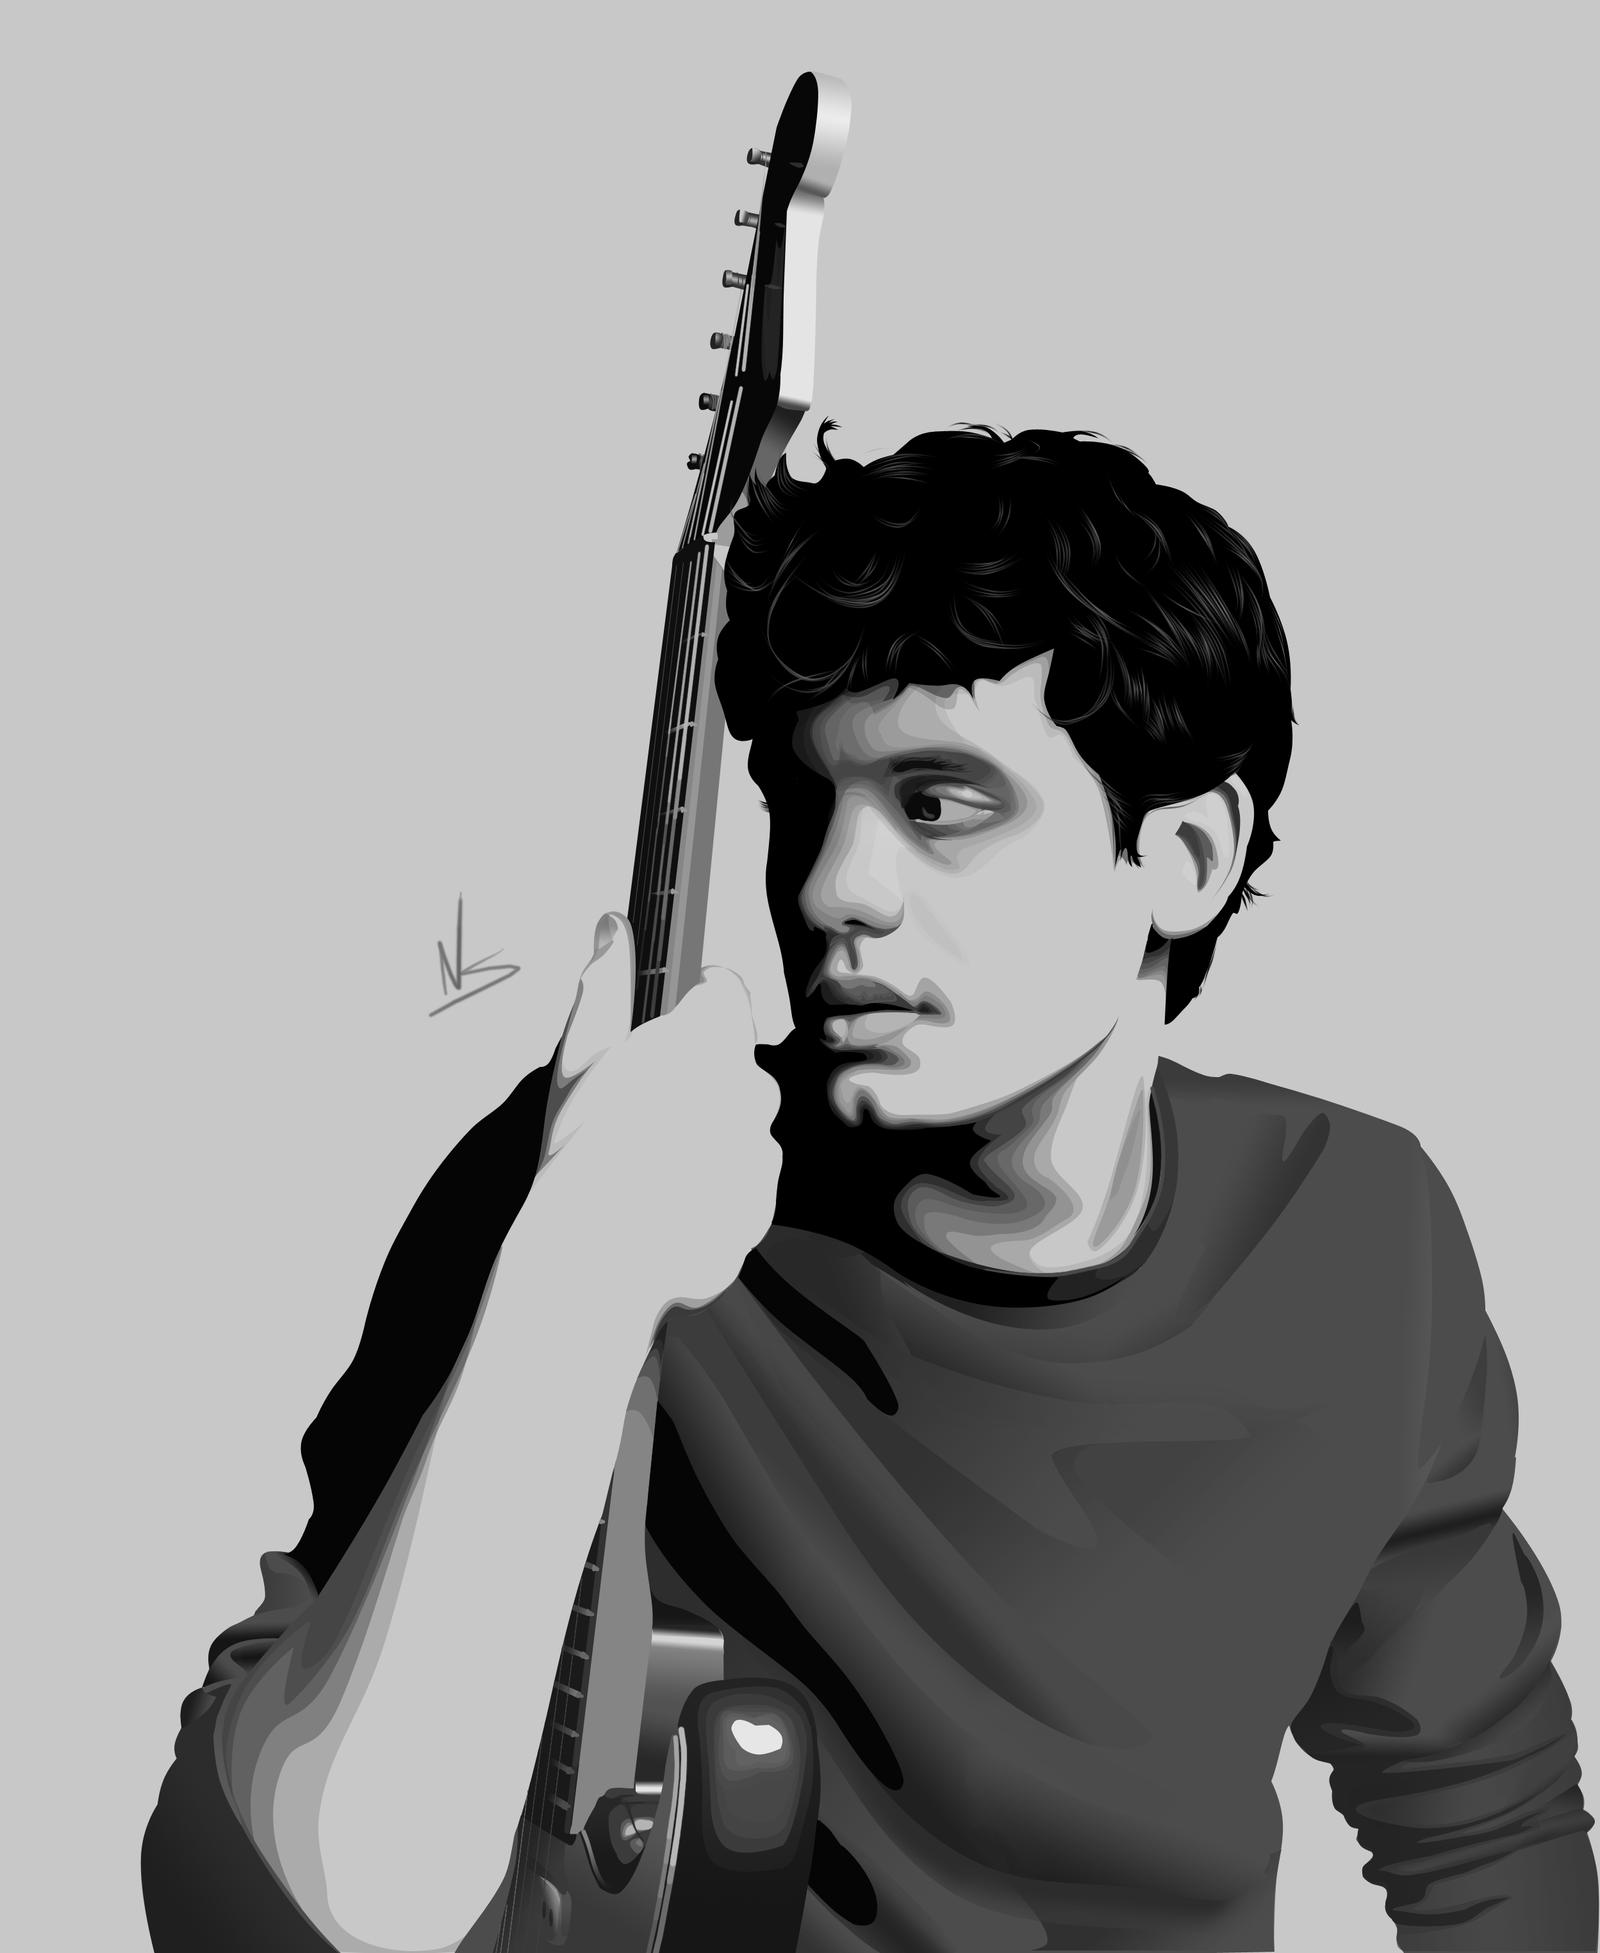 John Mayer Wallpaper: John Mayer By 0stargazer0 On DeviantArt